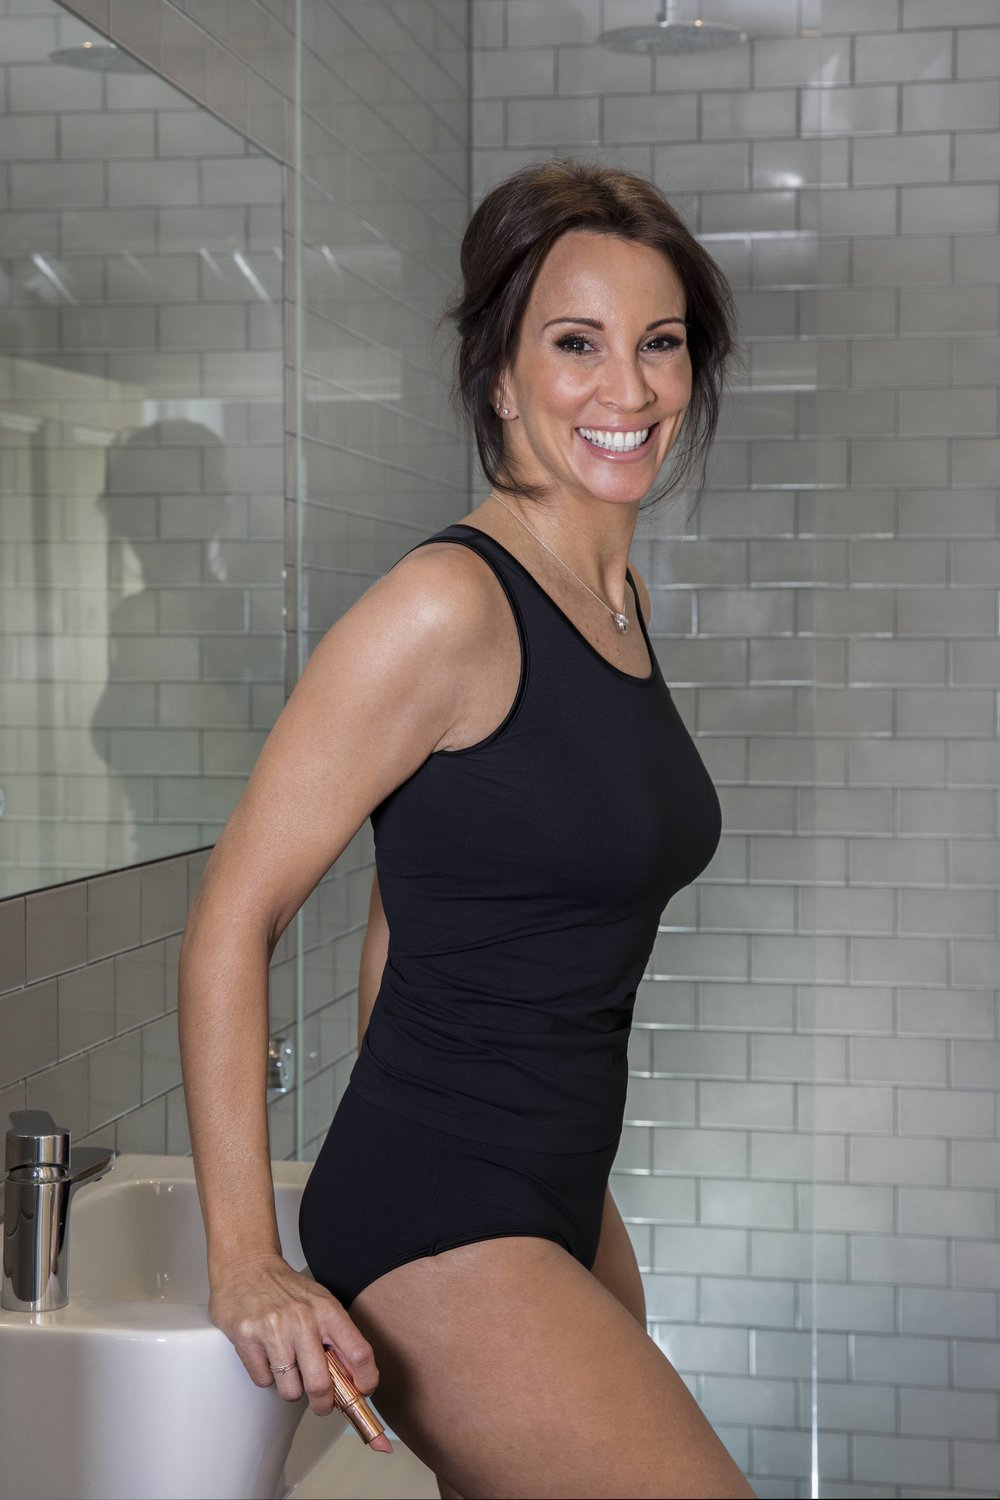 ANDREA MCLEAN WEARING BECOME UNDIES - THE UNDERWEAR THAT HELPS BANISH MENOPAUSAL HOT FLUSHES